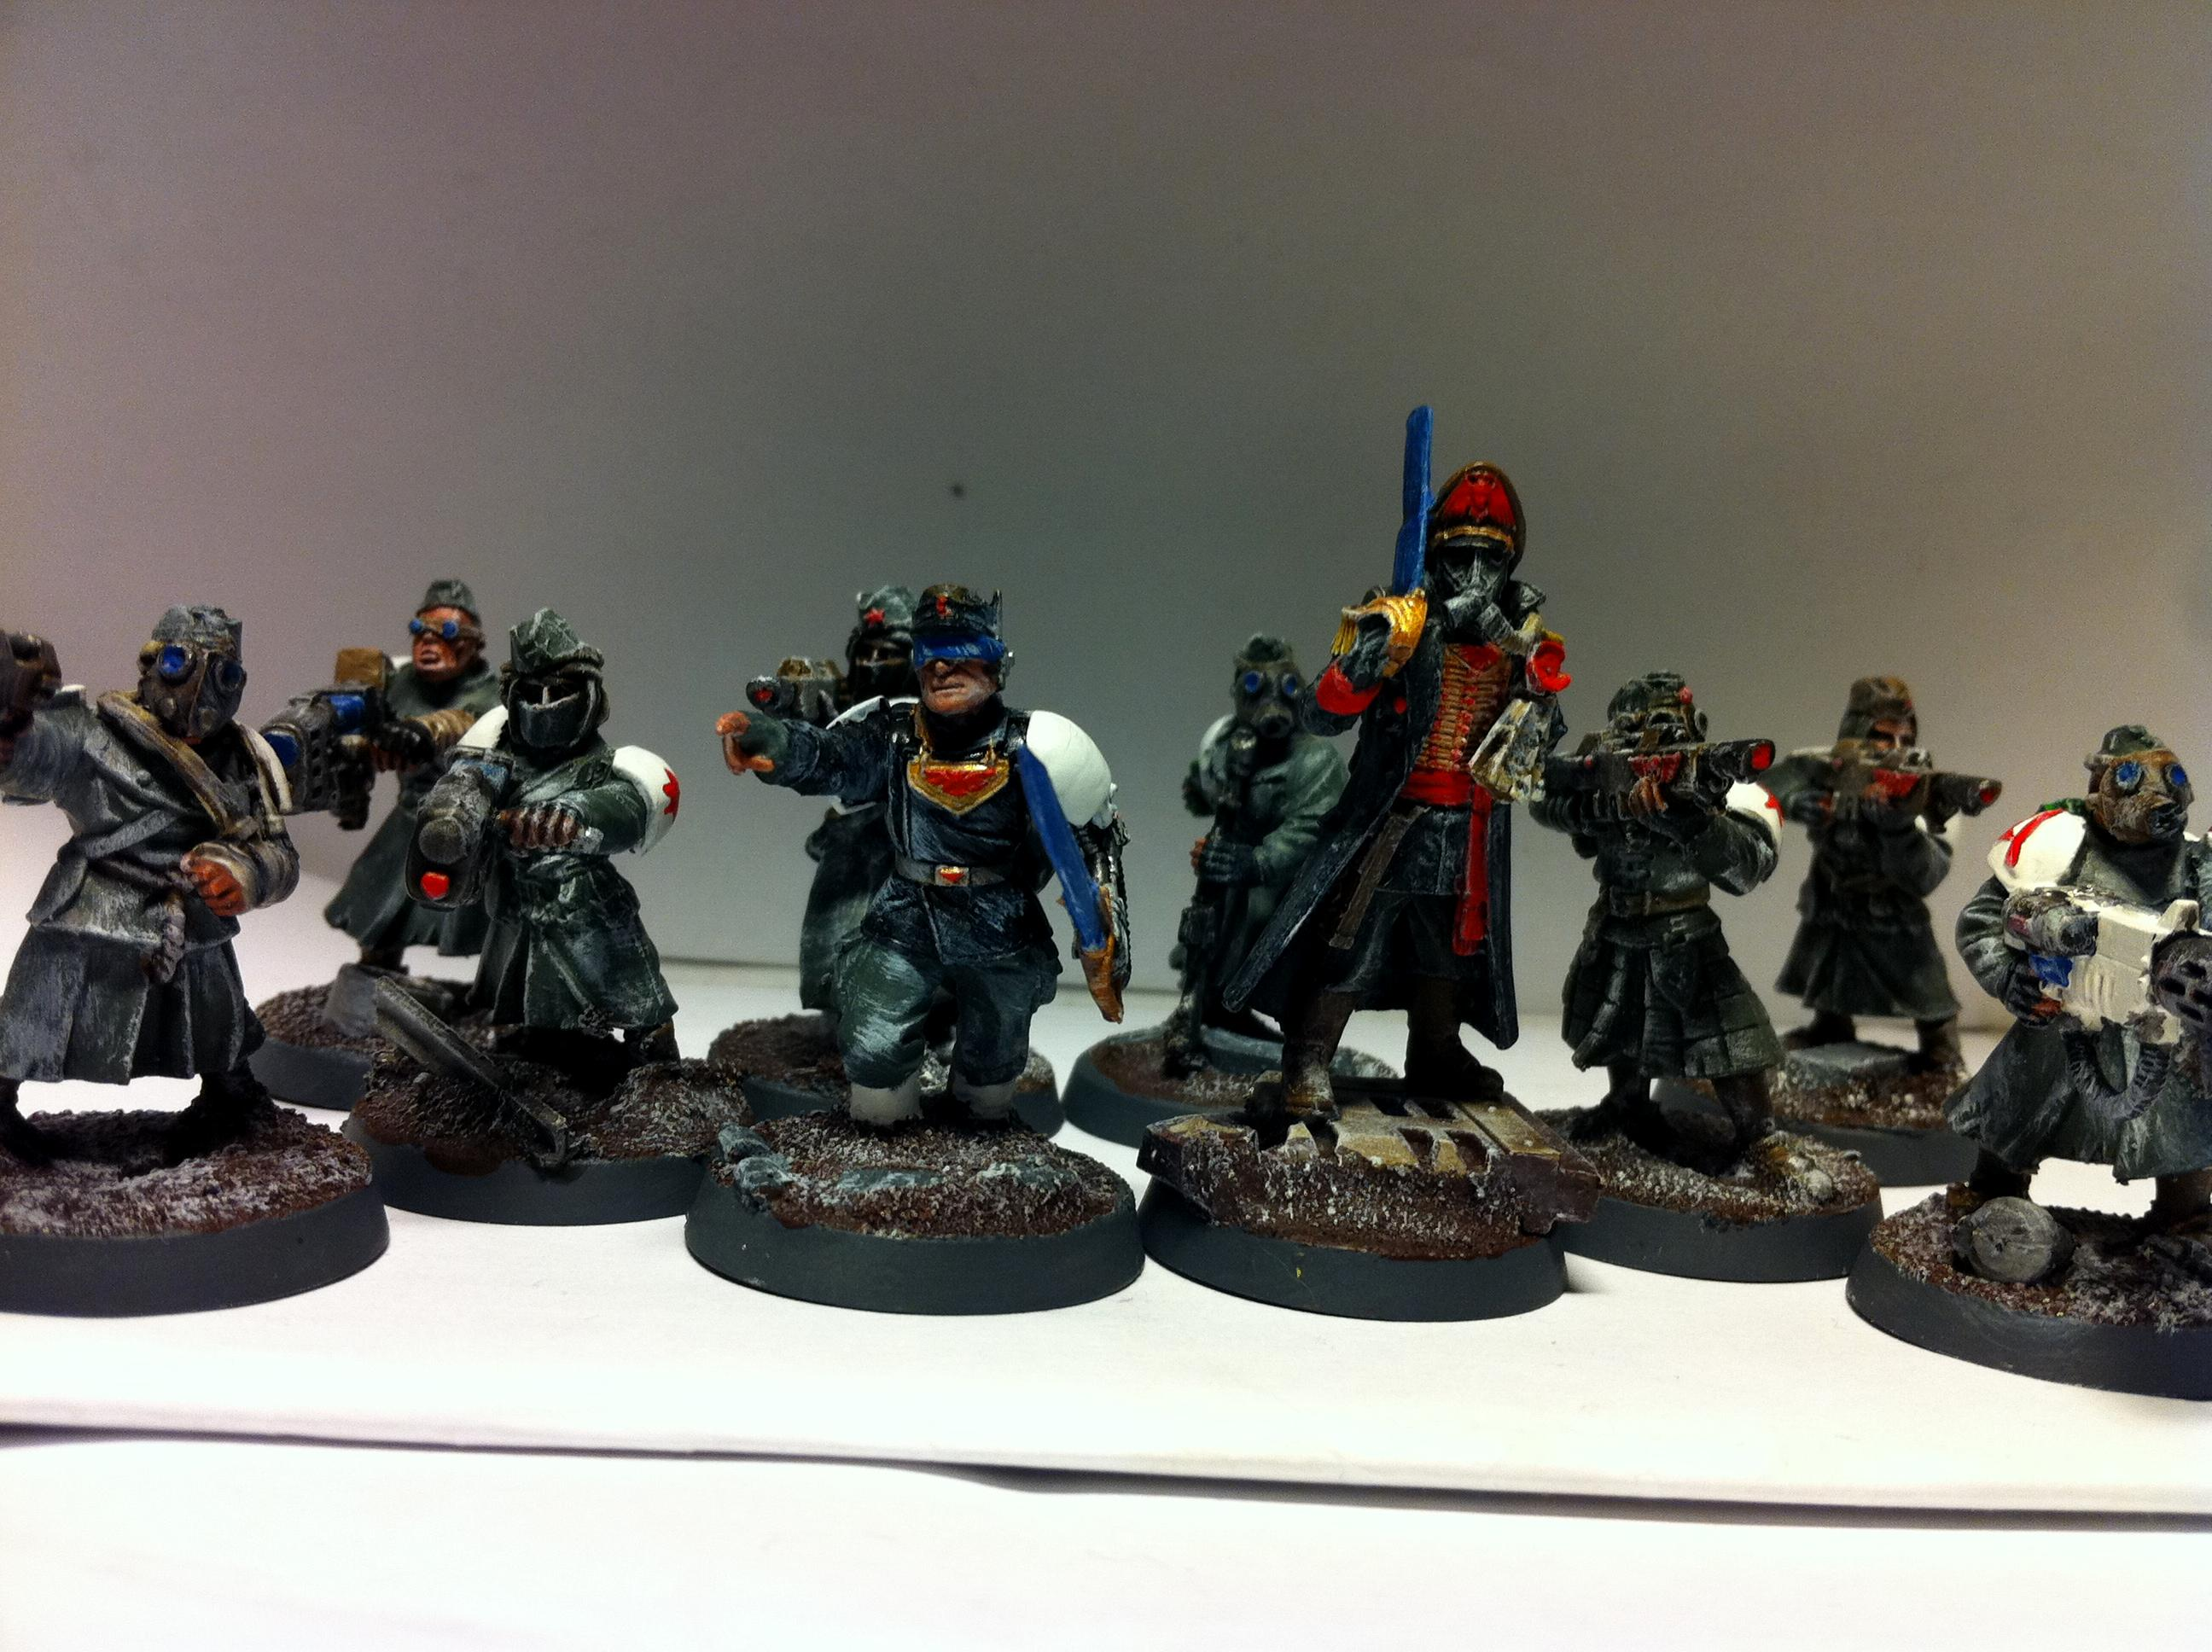 Conversion, Imperial Guard, Pig Iron, Warhammer 40,000